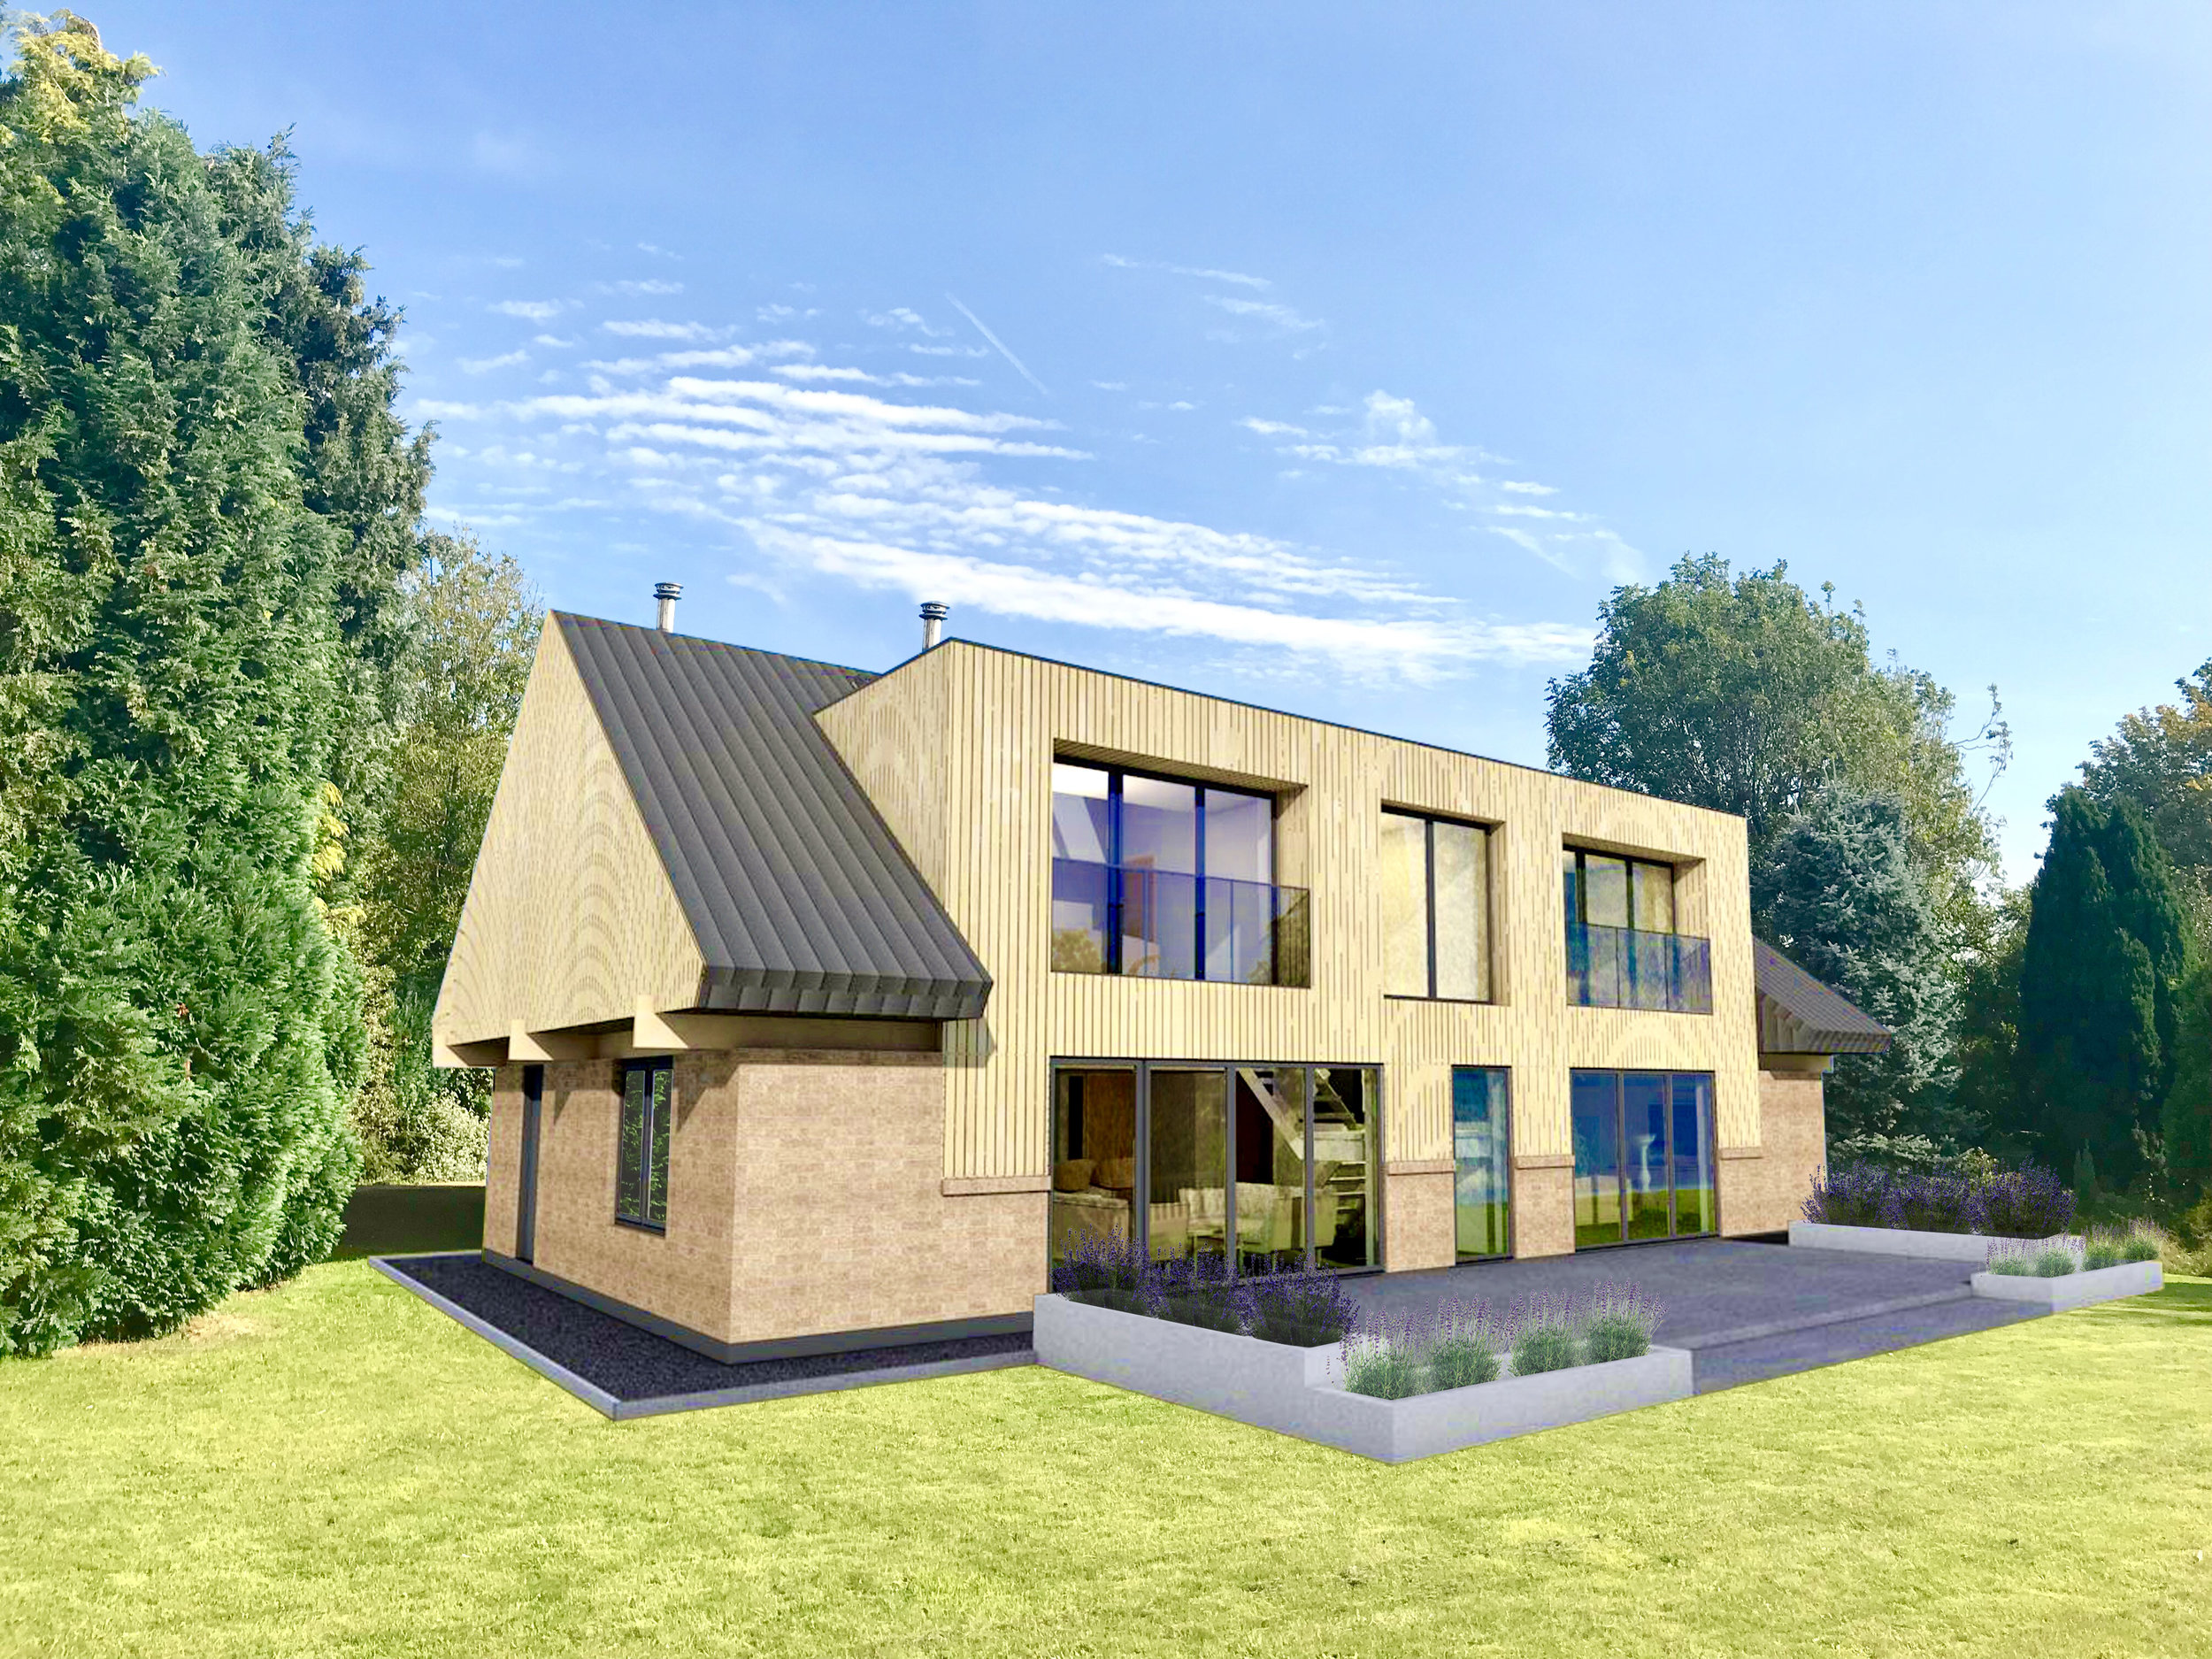 Concept design stage complete for this Danish Passivhaus in Belton, featuring an oak clad contemporary dormer cutting through a zinc roof with extended eaves. The structure utilises a glulam timber portal frame and the home has a heat recovery system ensuring very low running costs and an efficient energy footprint